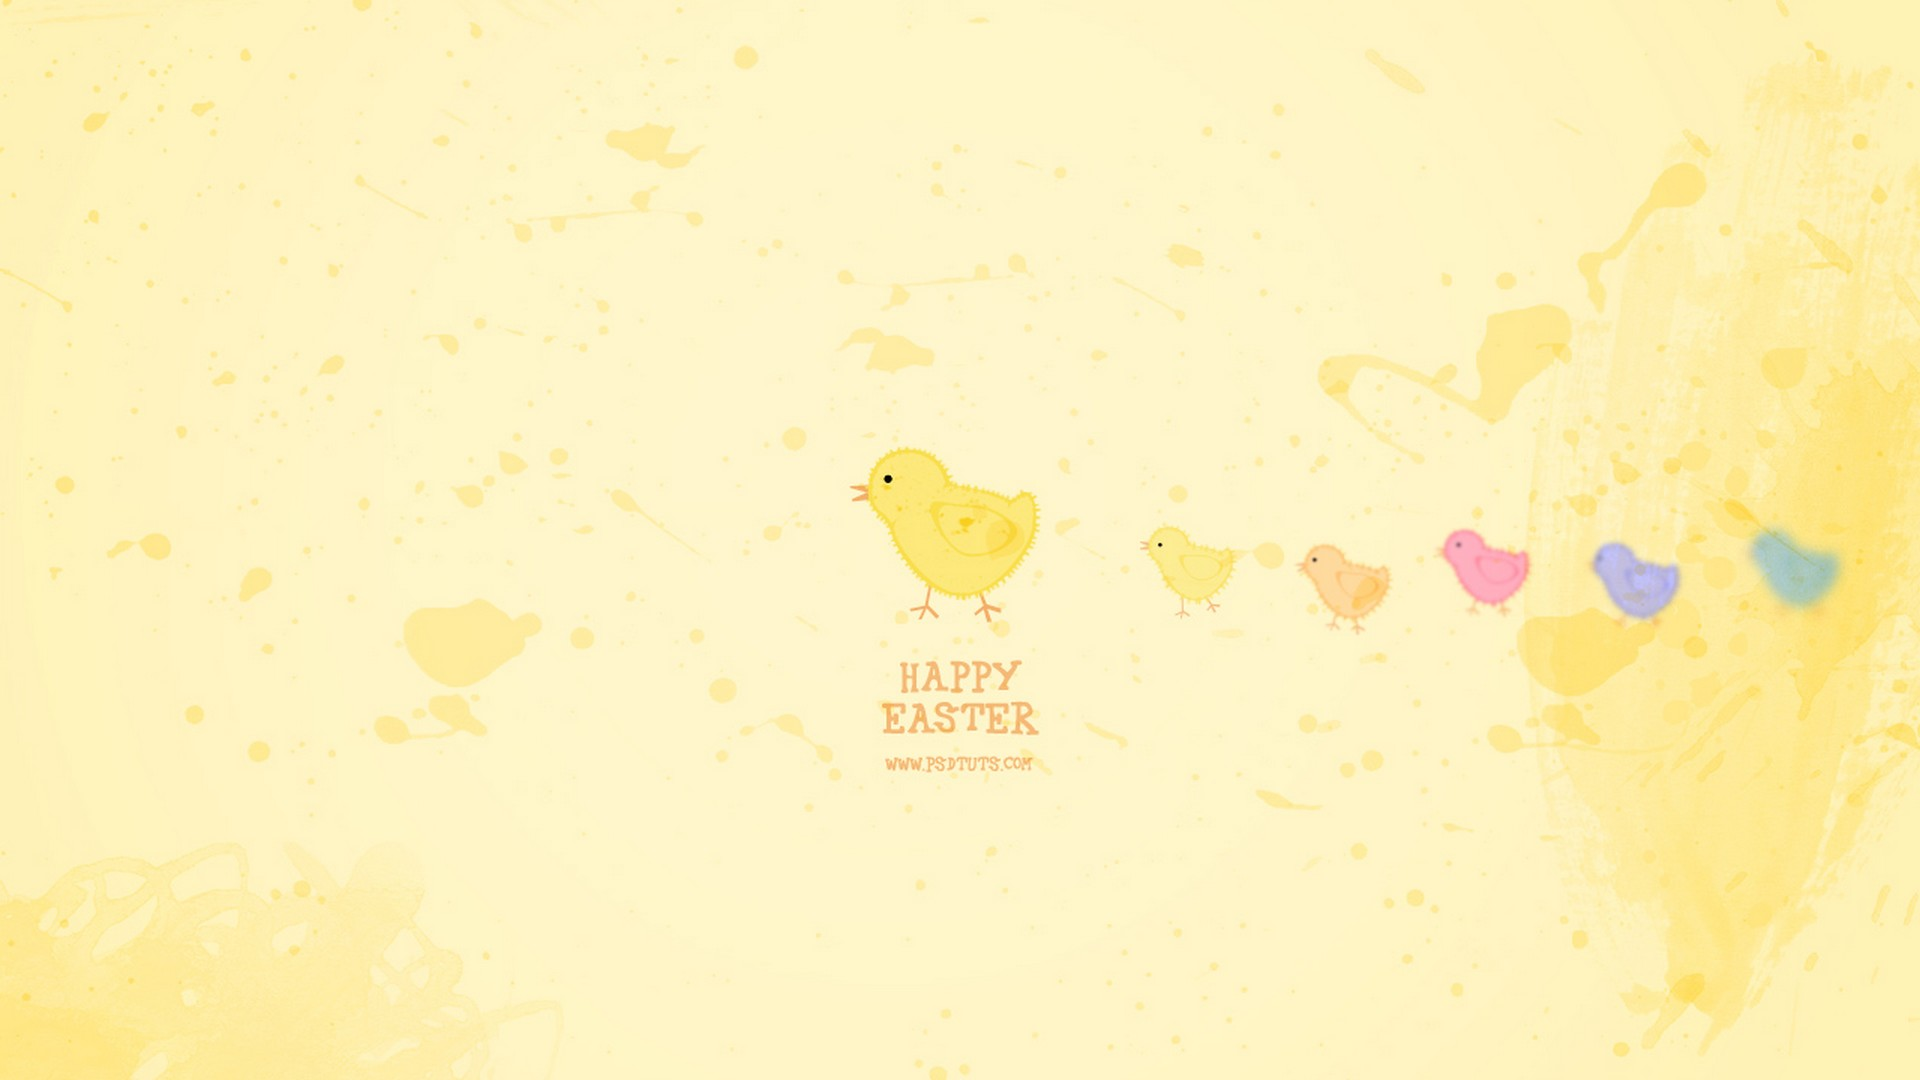 Best Bright Yellow Wallpaper 2021 Cute Wallpapers 1920x1080